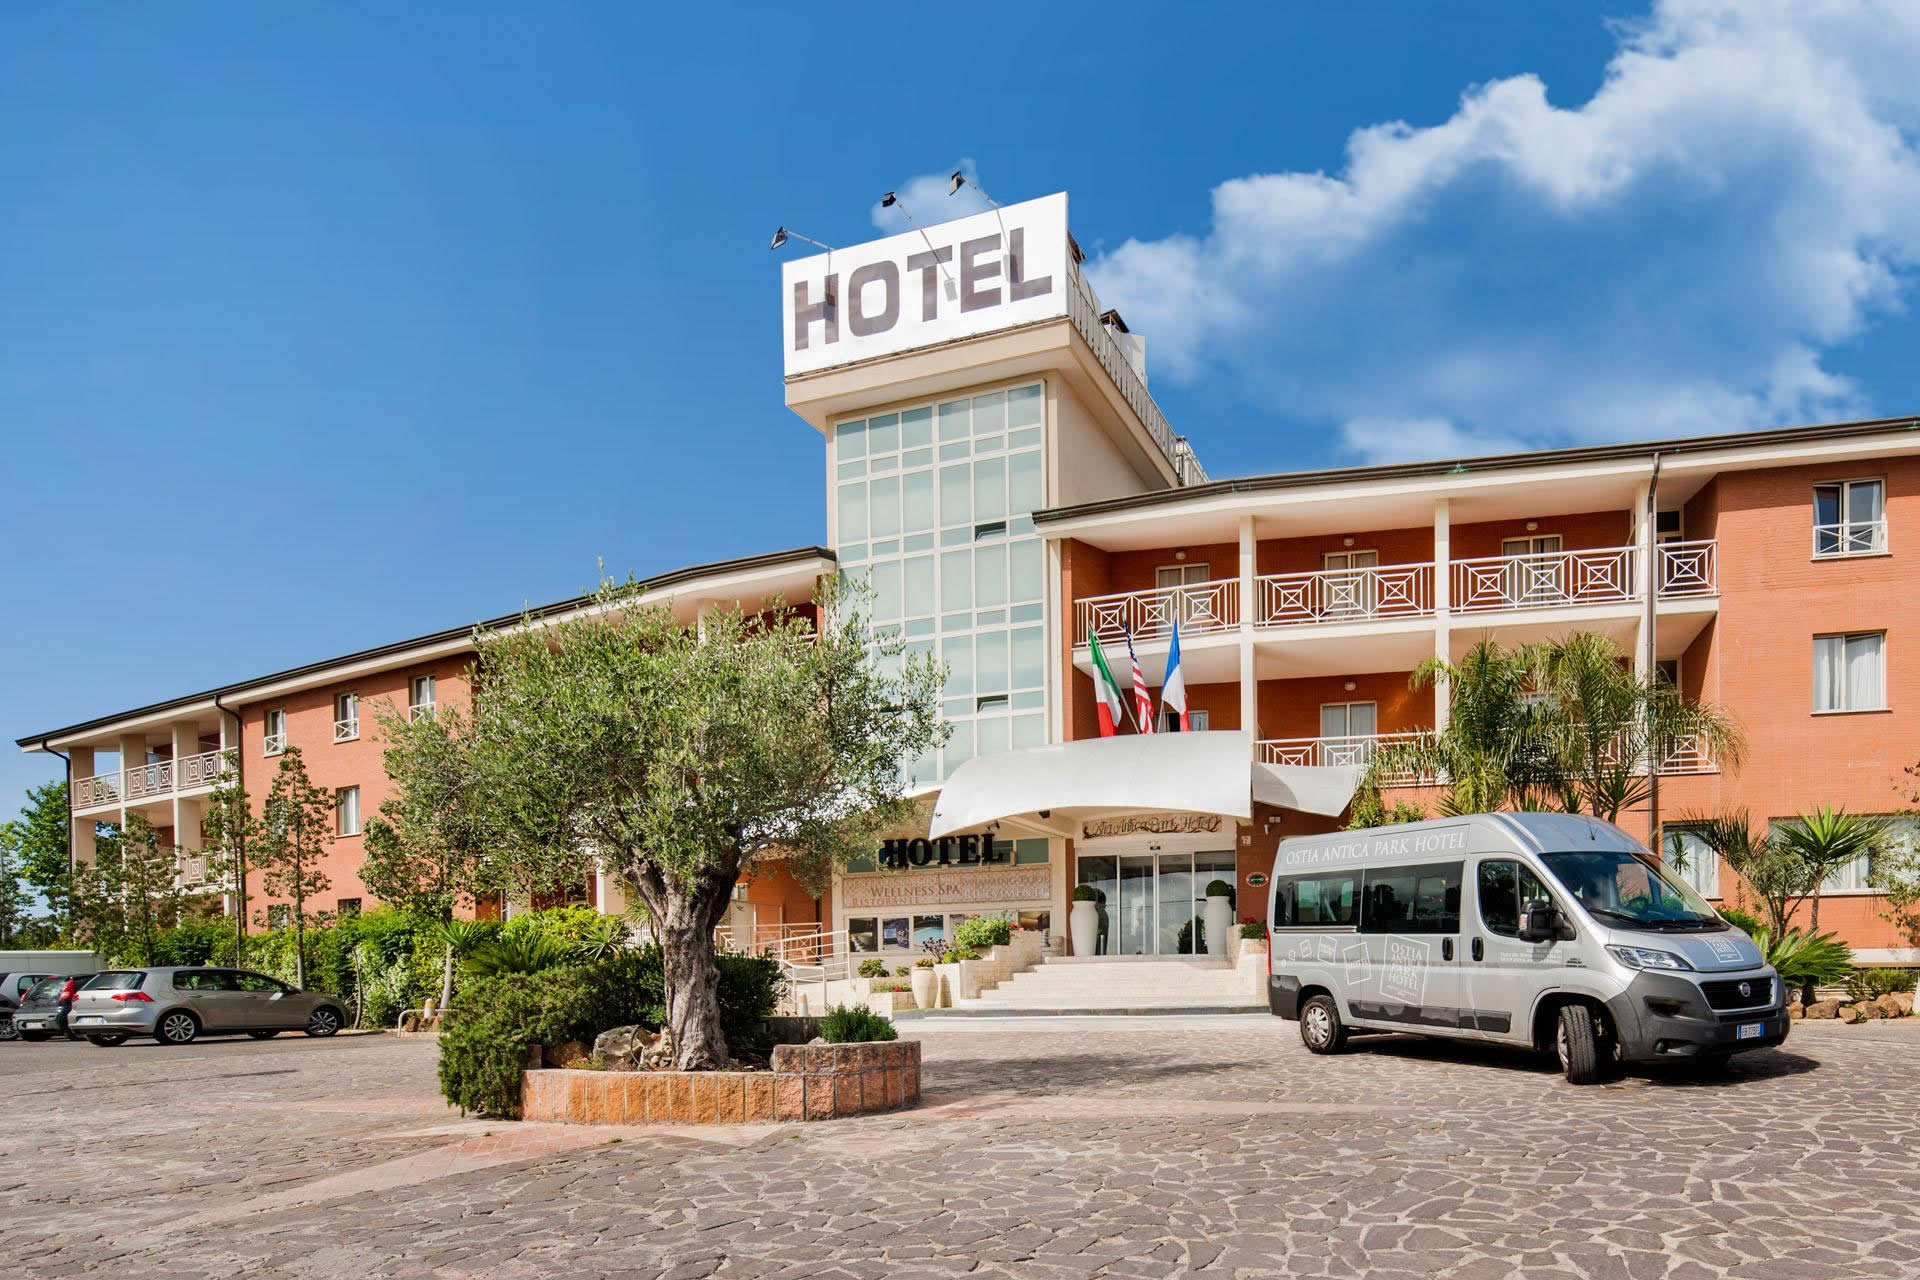 Ostia Hotel Shuttle Bus To The Airport  Rome Fair And The